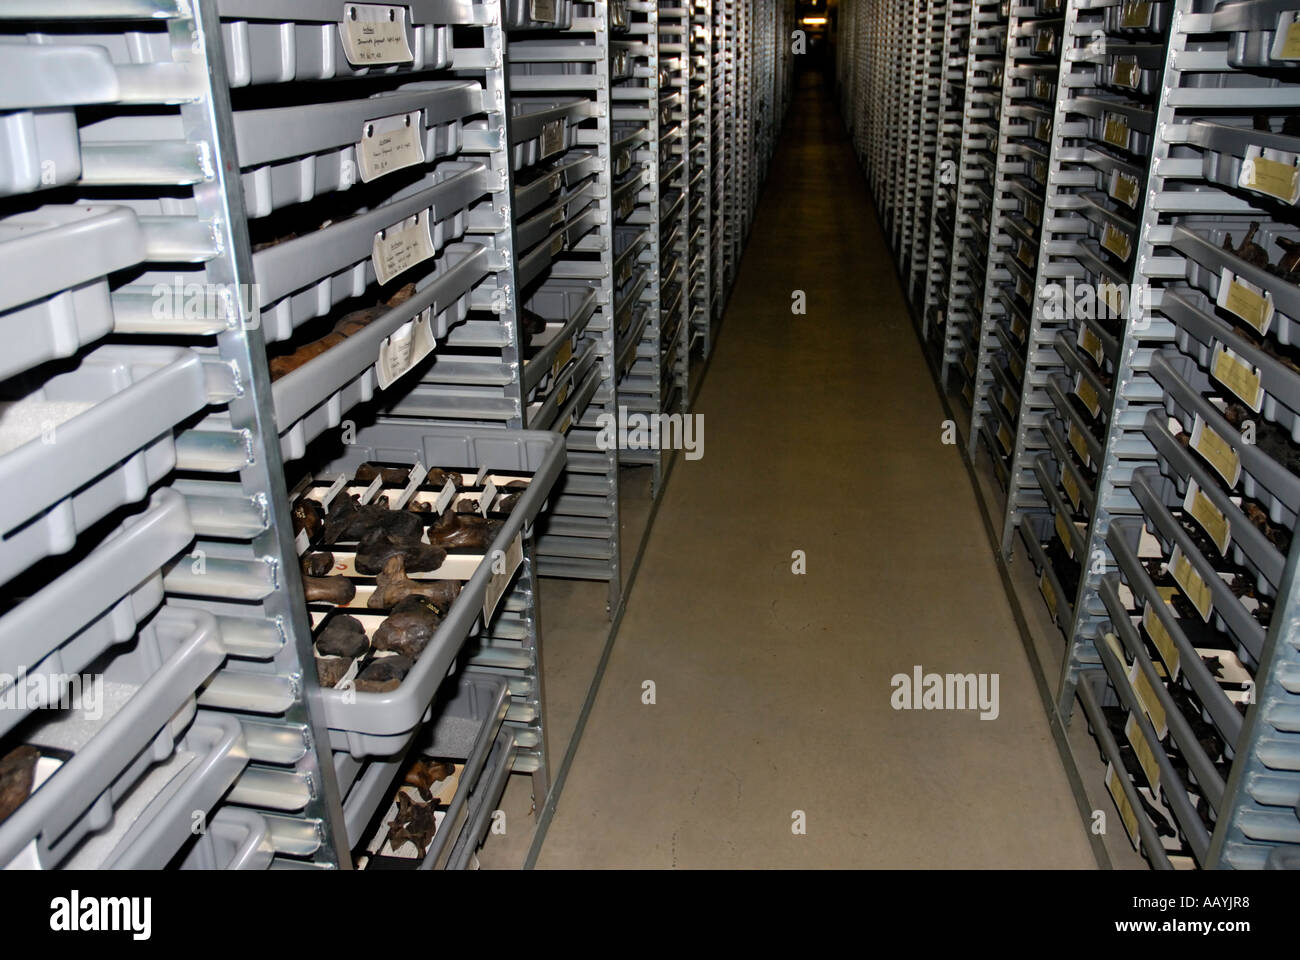 Preserved Mammal Bones From La Brea Tar Pit Excavations In Storage, Page  Museum, Los Angeles